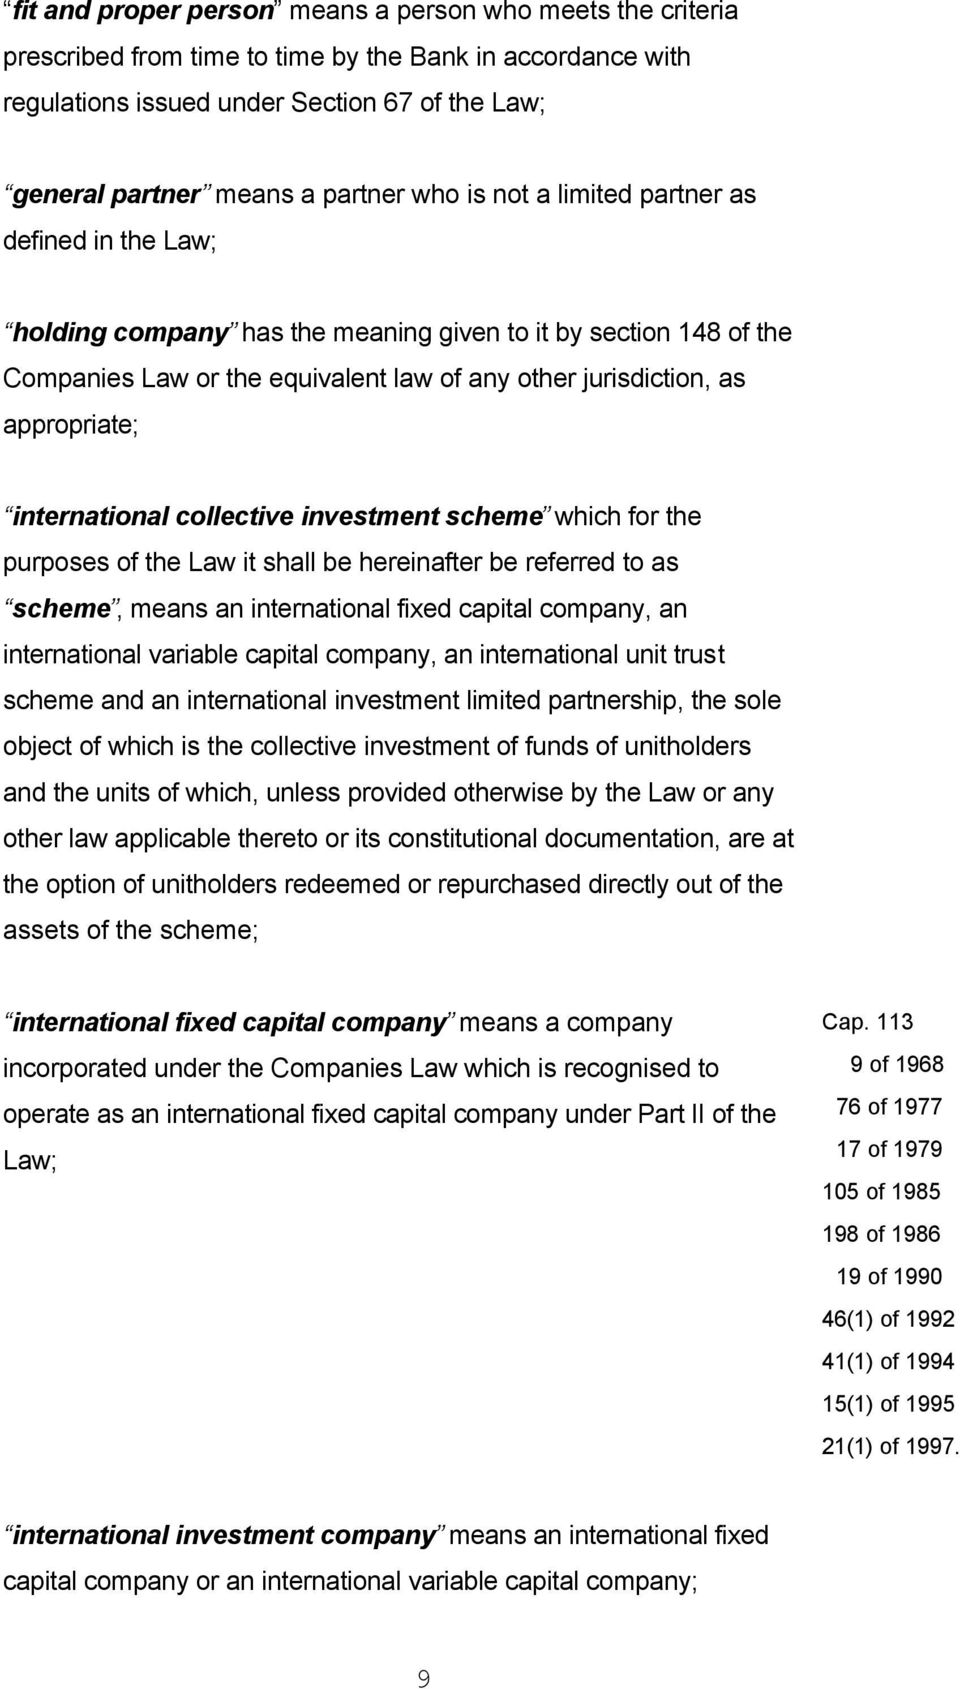 international collective investment scheme which for the purposes of the Law it shall be hereinafter be referred to as scheme, means an international fixed capital company, an international variable